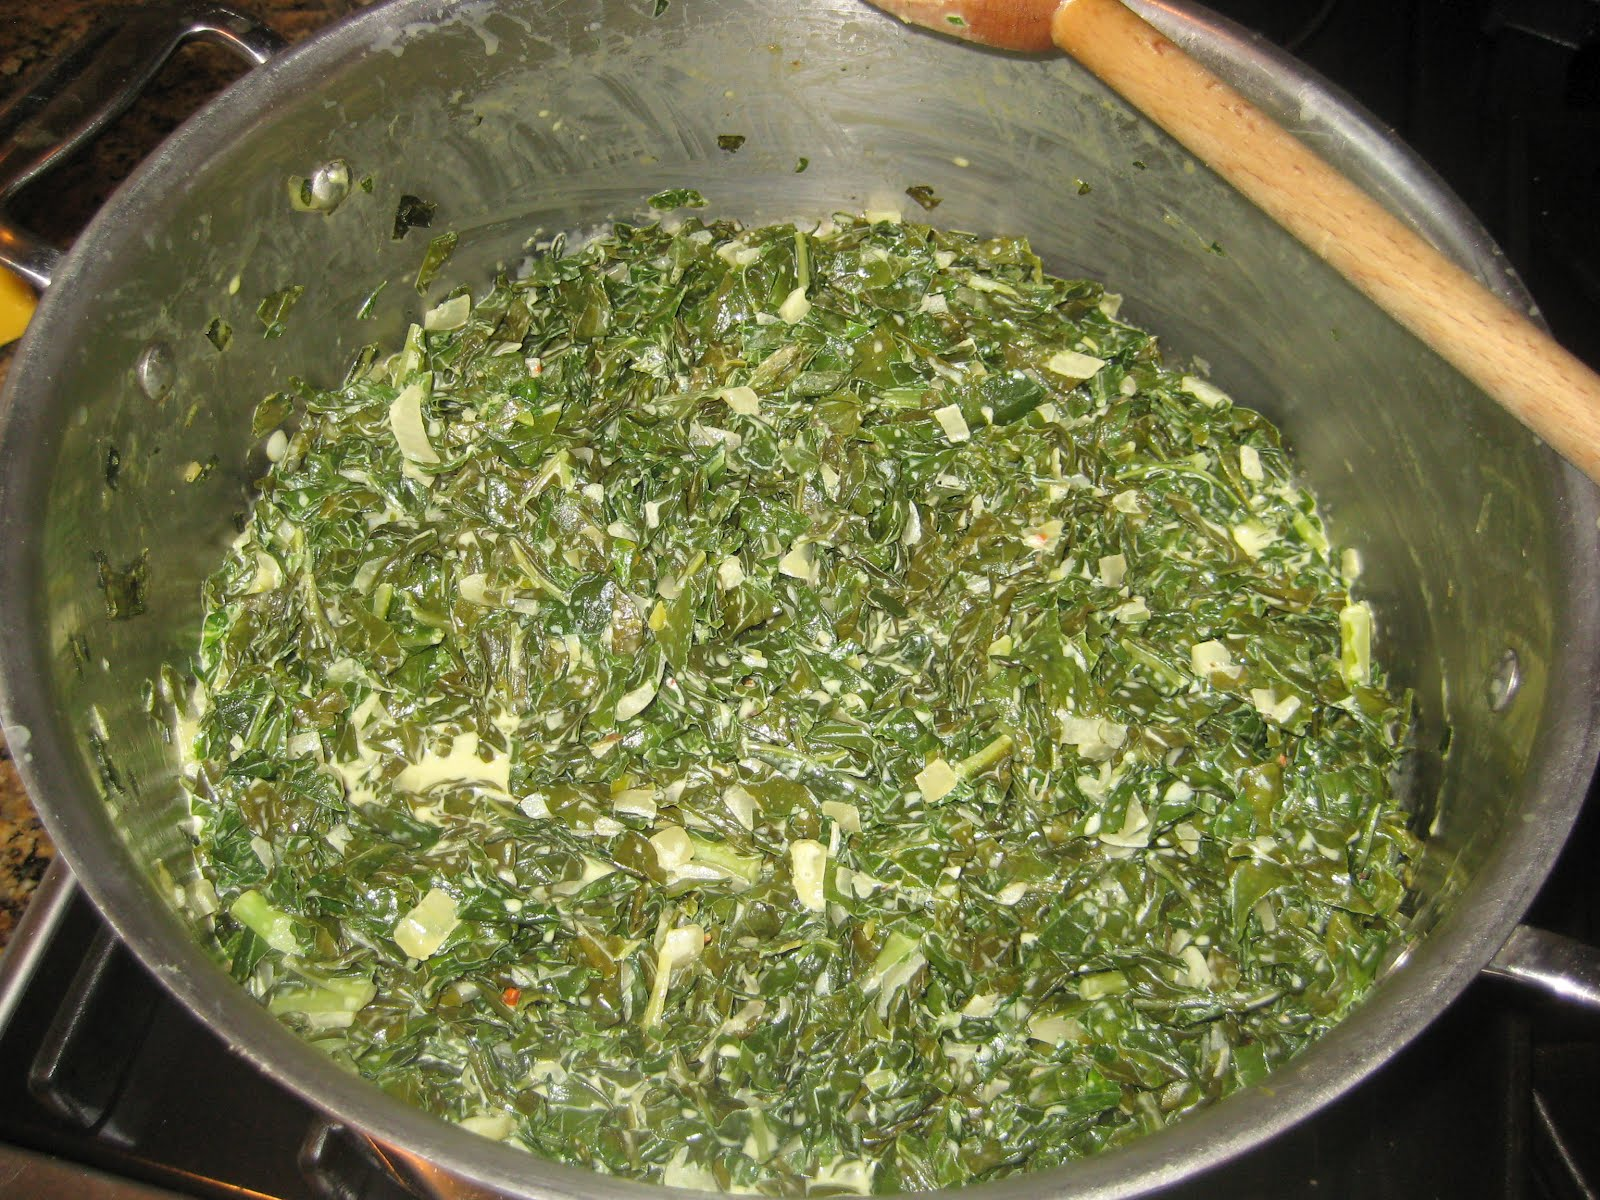 ... Delicious Truth: How to Make Creamed Spinach, Using Rutabaga Greens